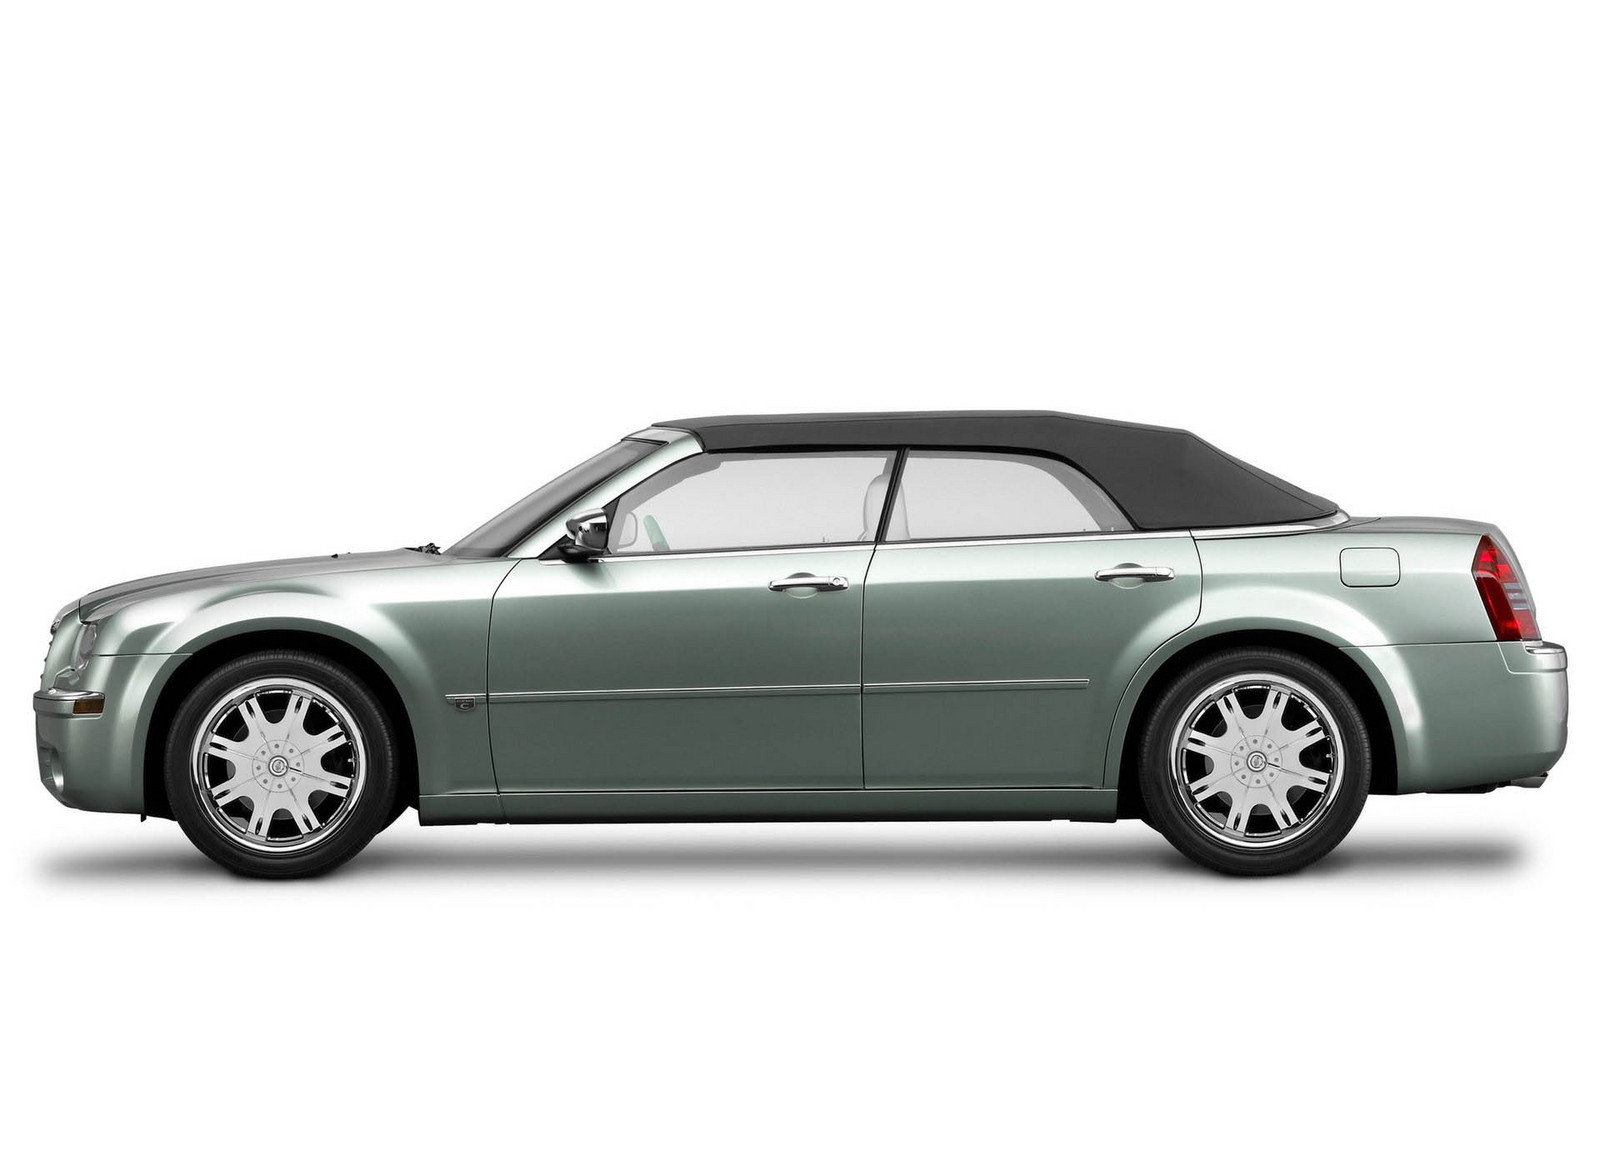 Town And Country Toyota >> 2005 Chrysler 300C Asc Helios Review - Top Speed